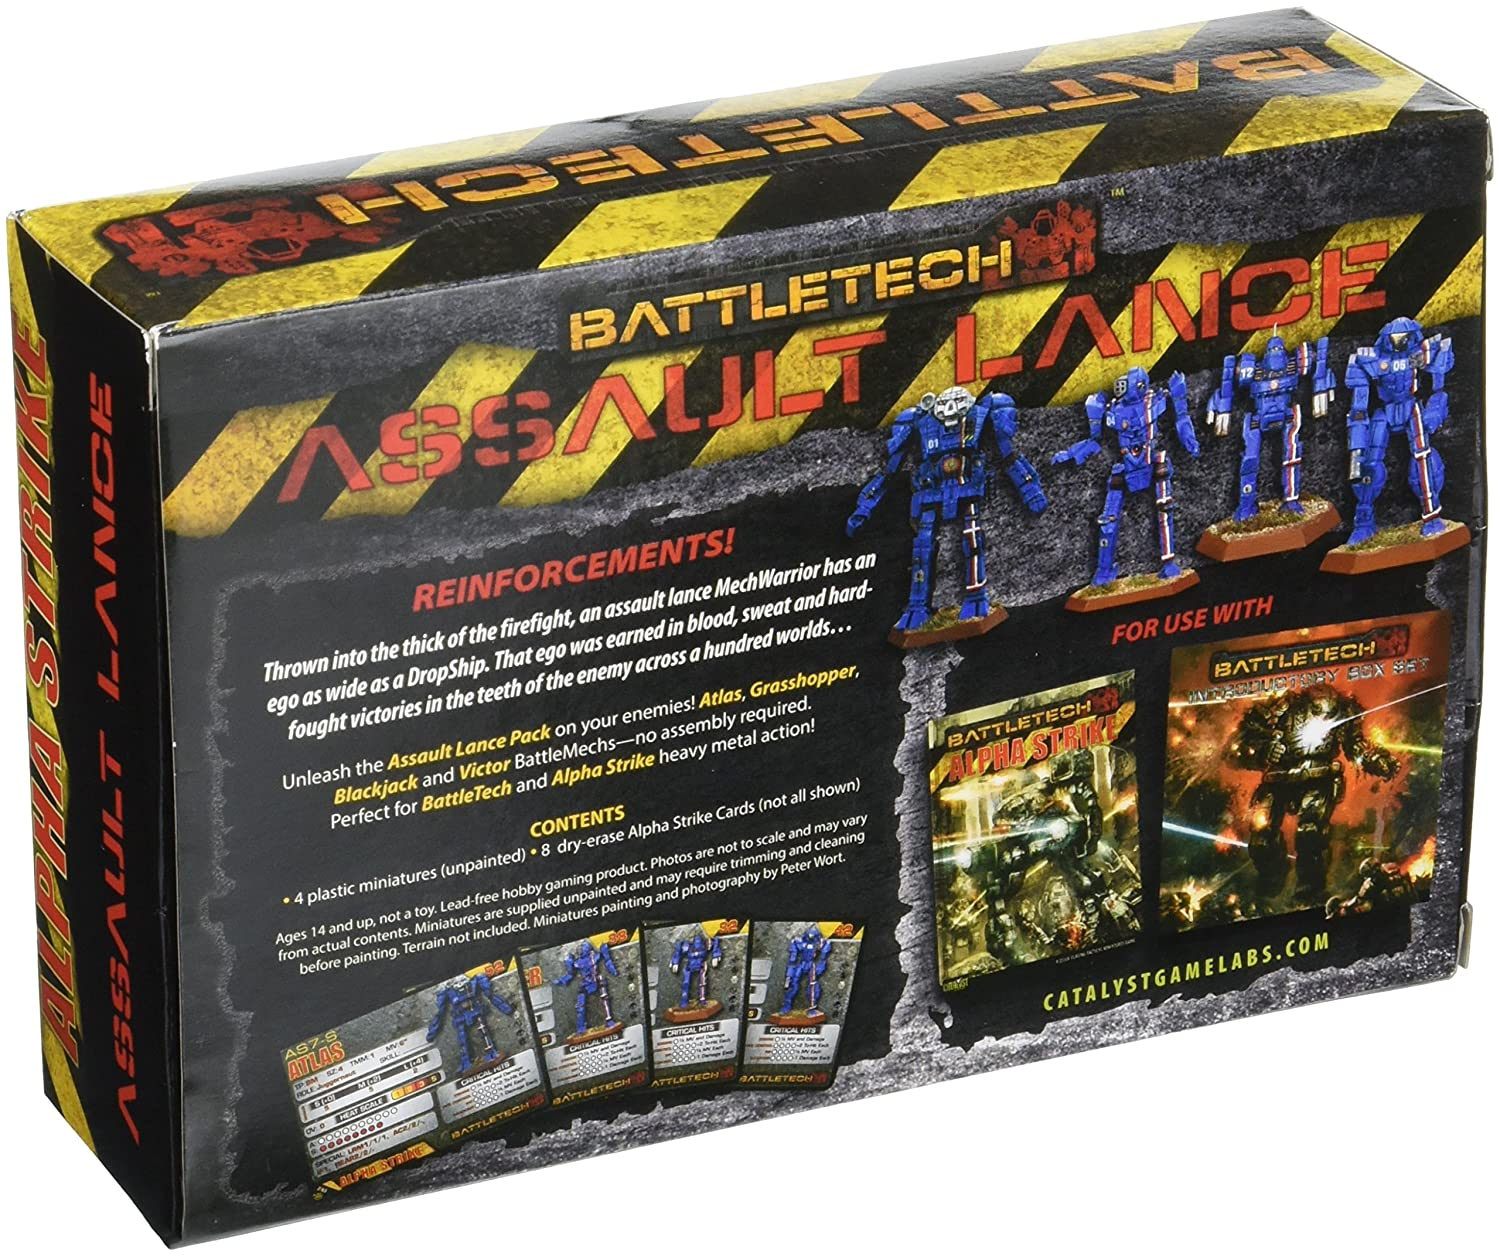 Easiest Ways To Make Money On Ebay Battletech Overlord Dropship